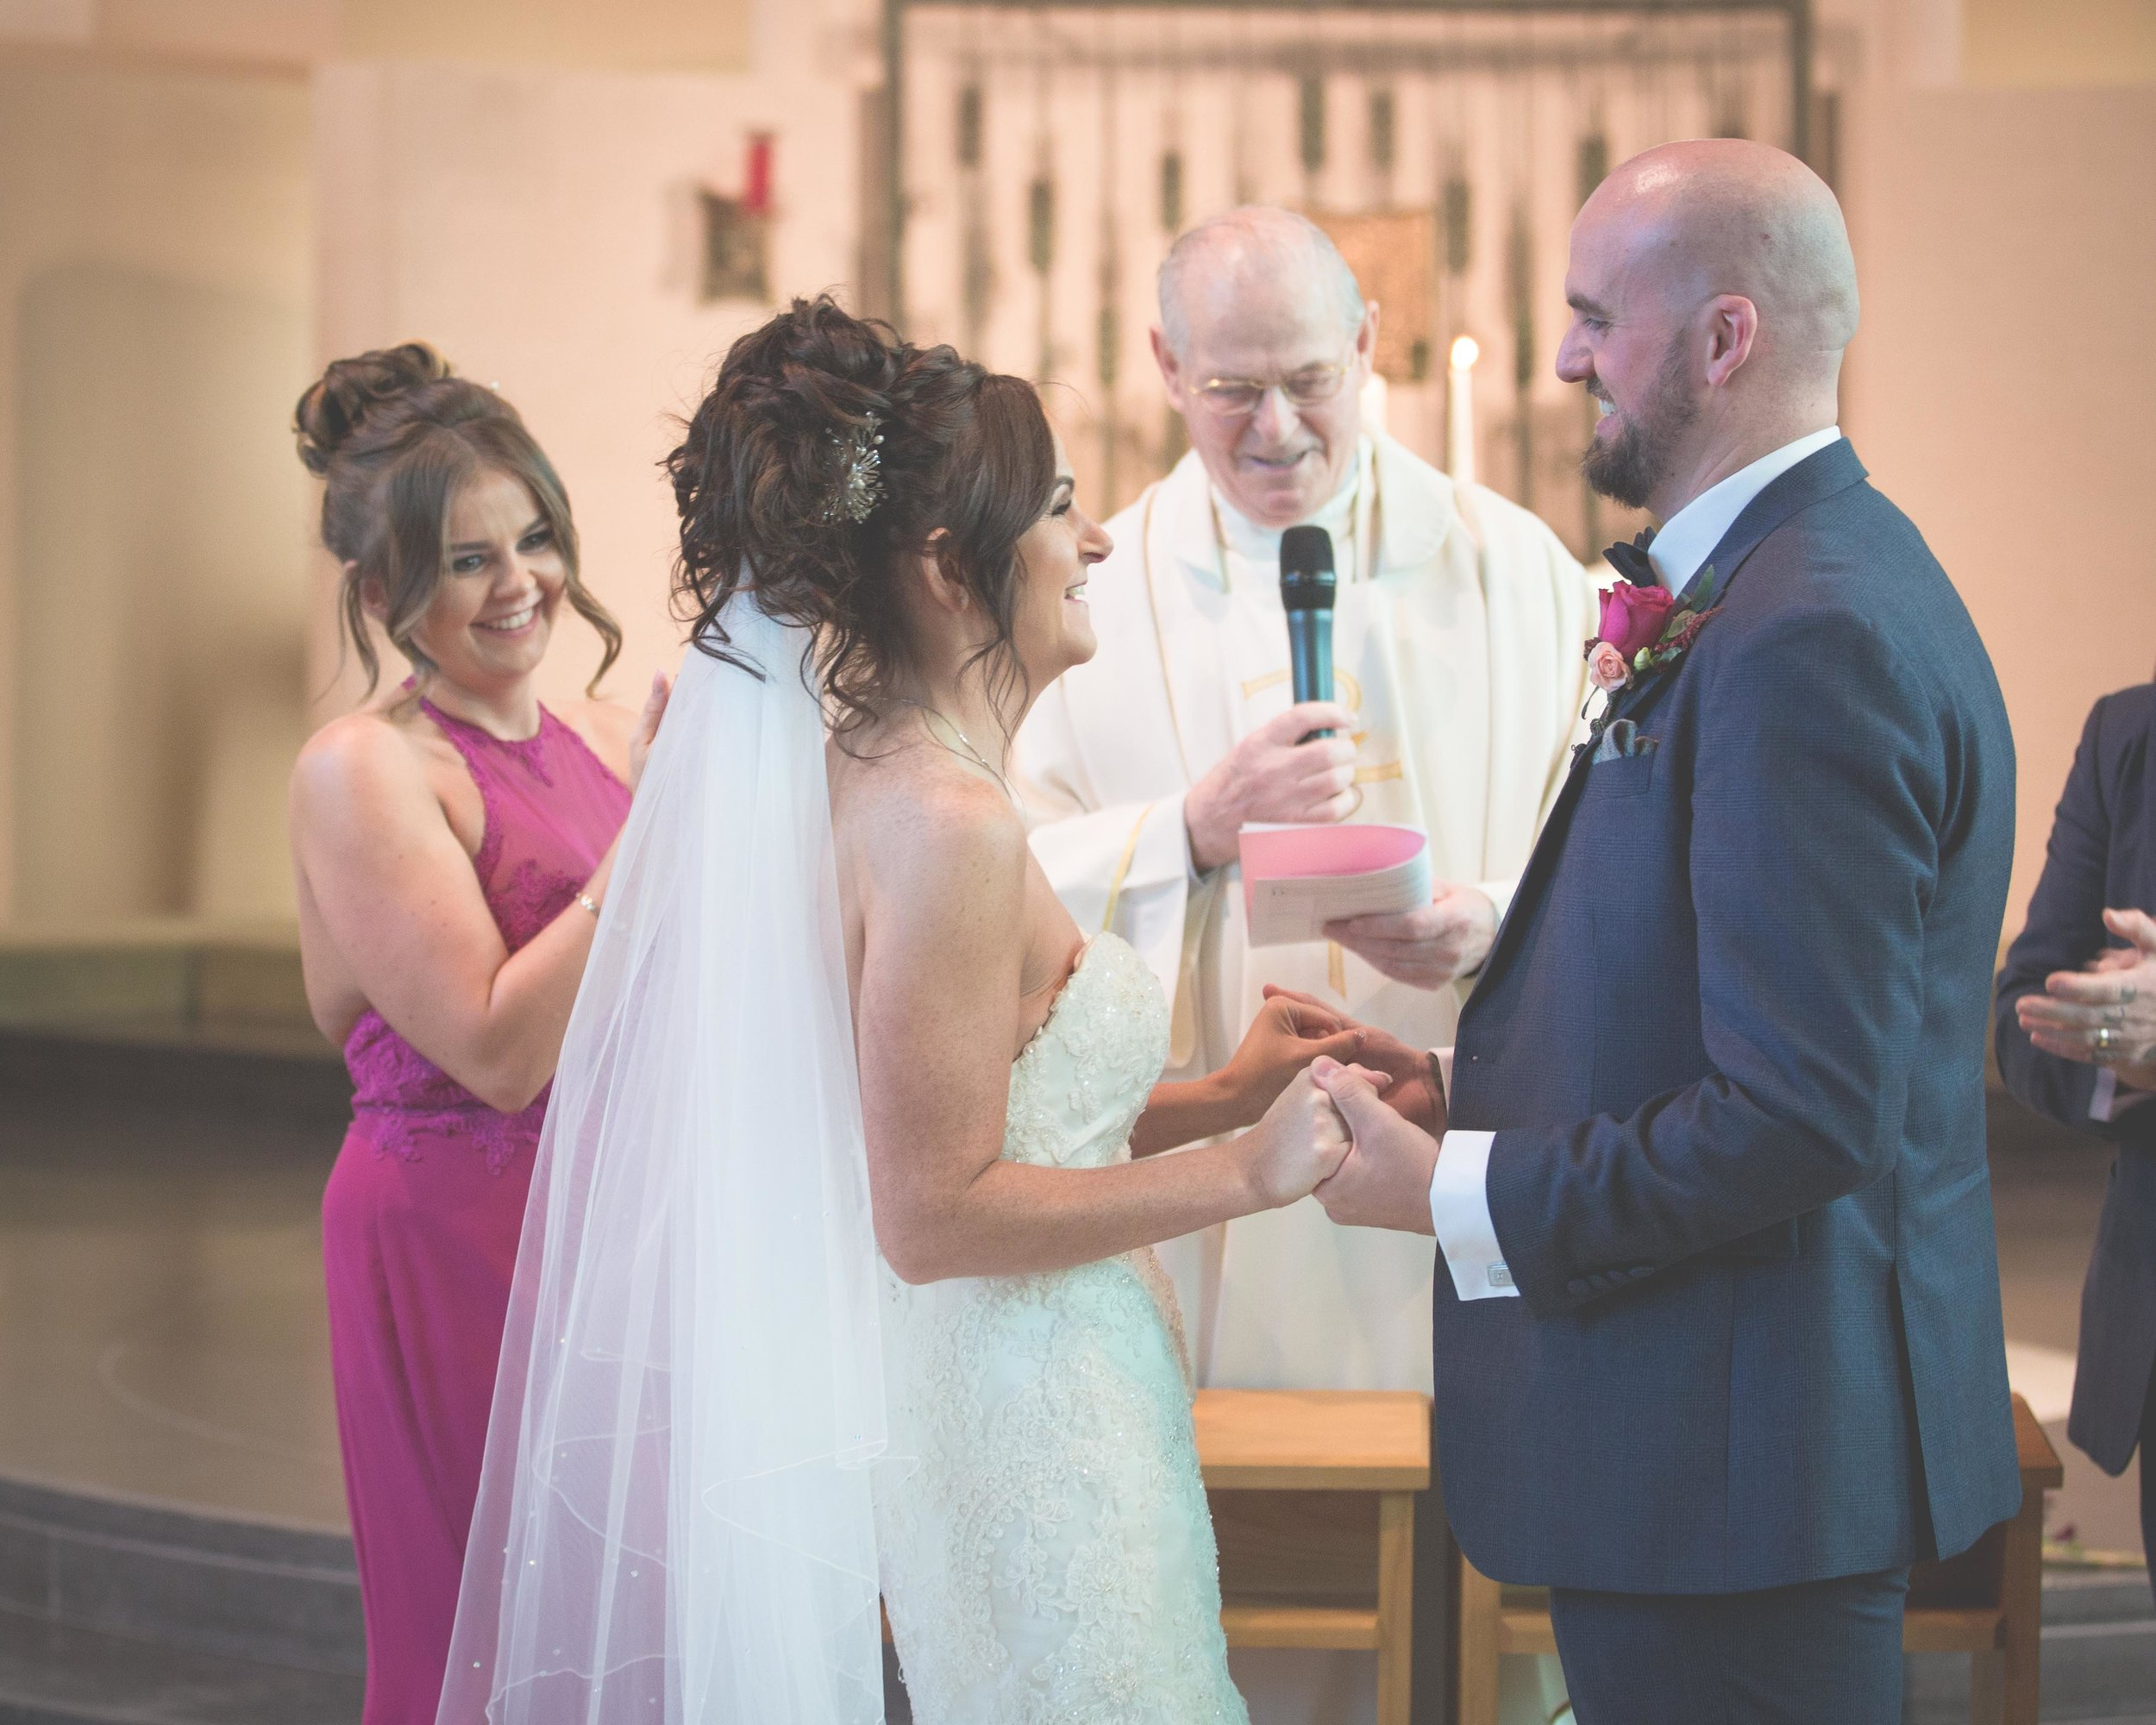 Aisling & Andy - Ceremony-70.jpg